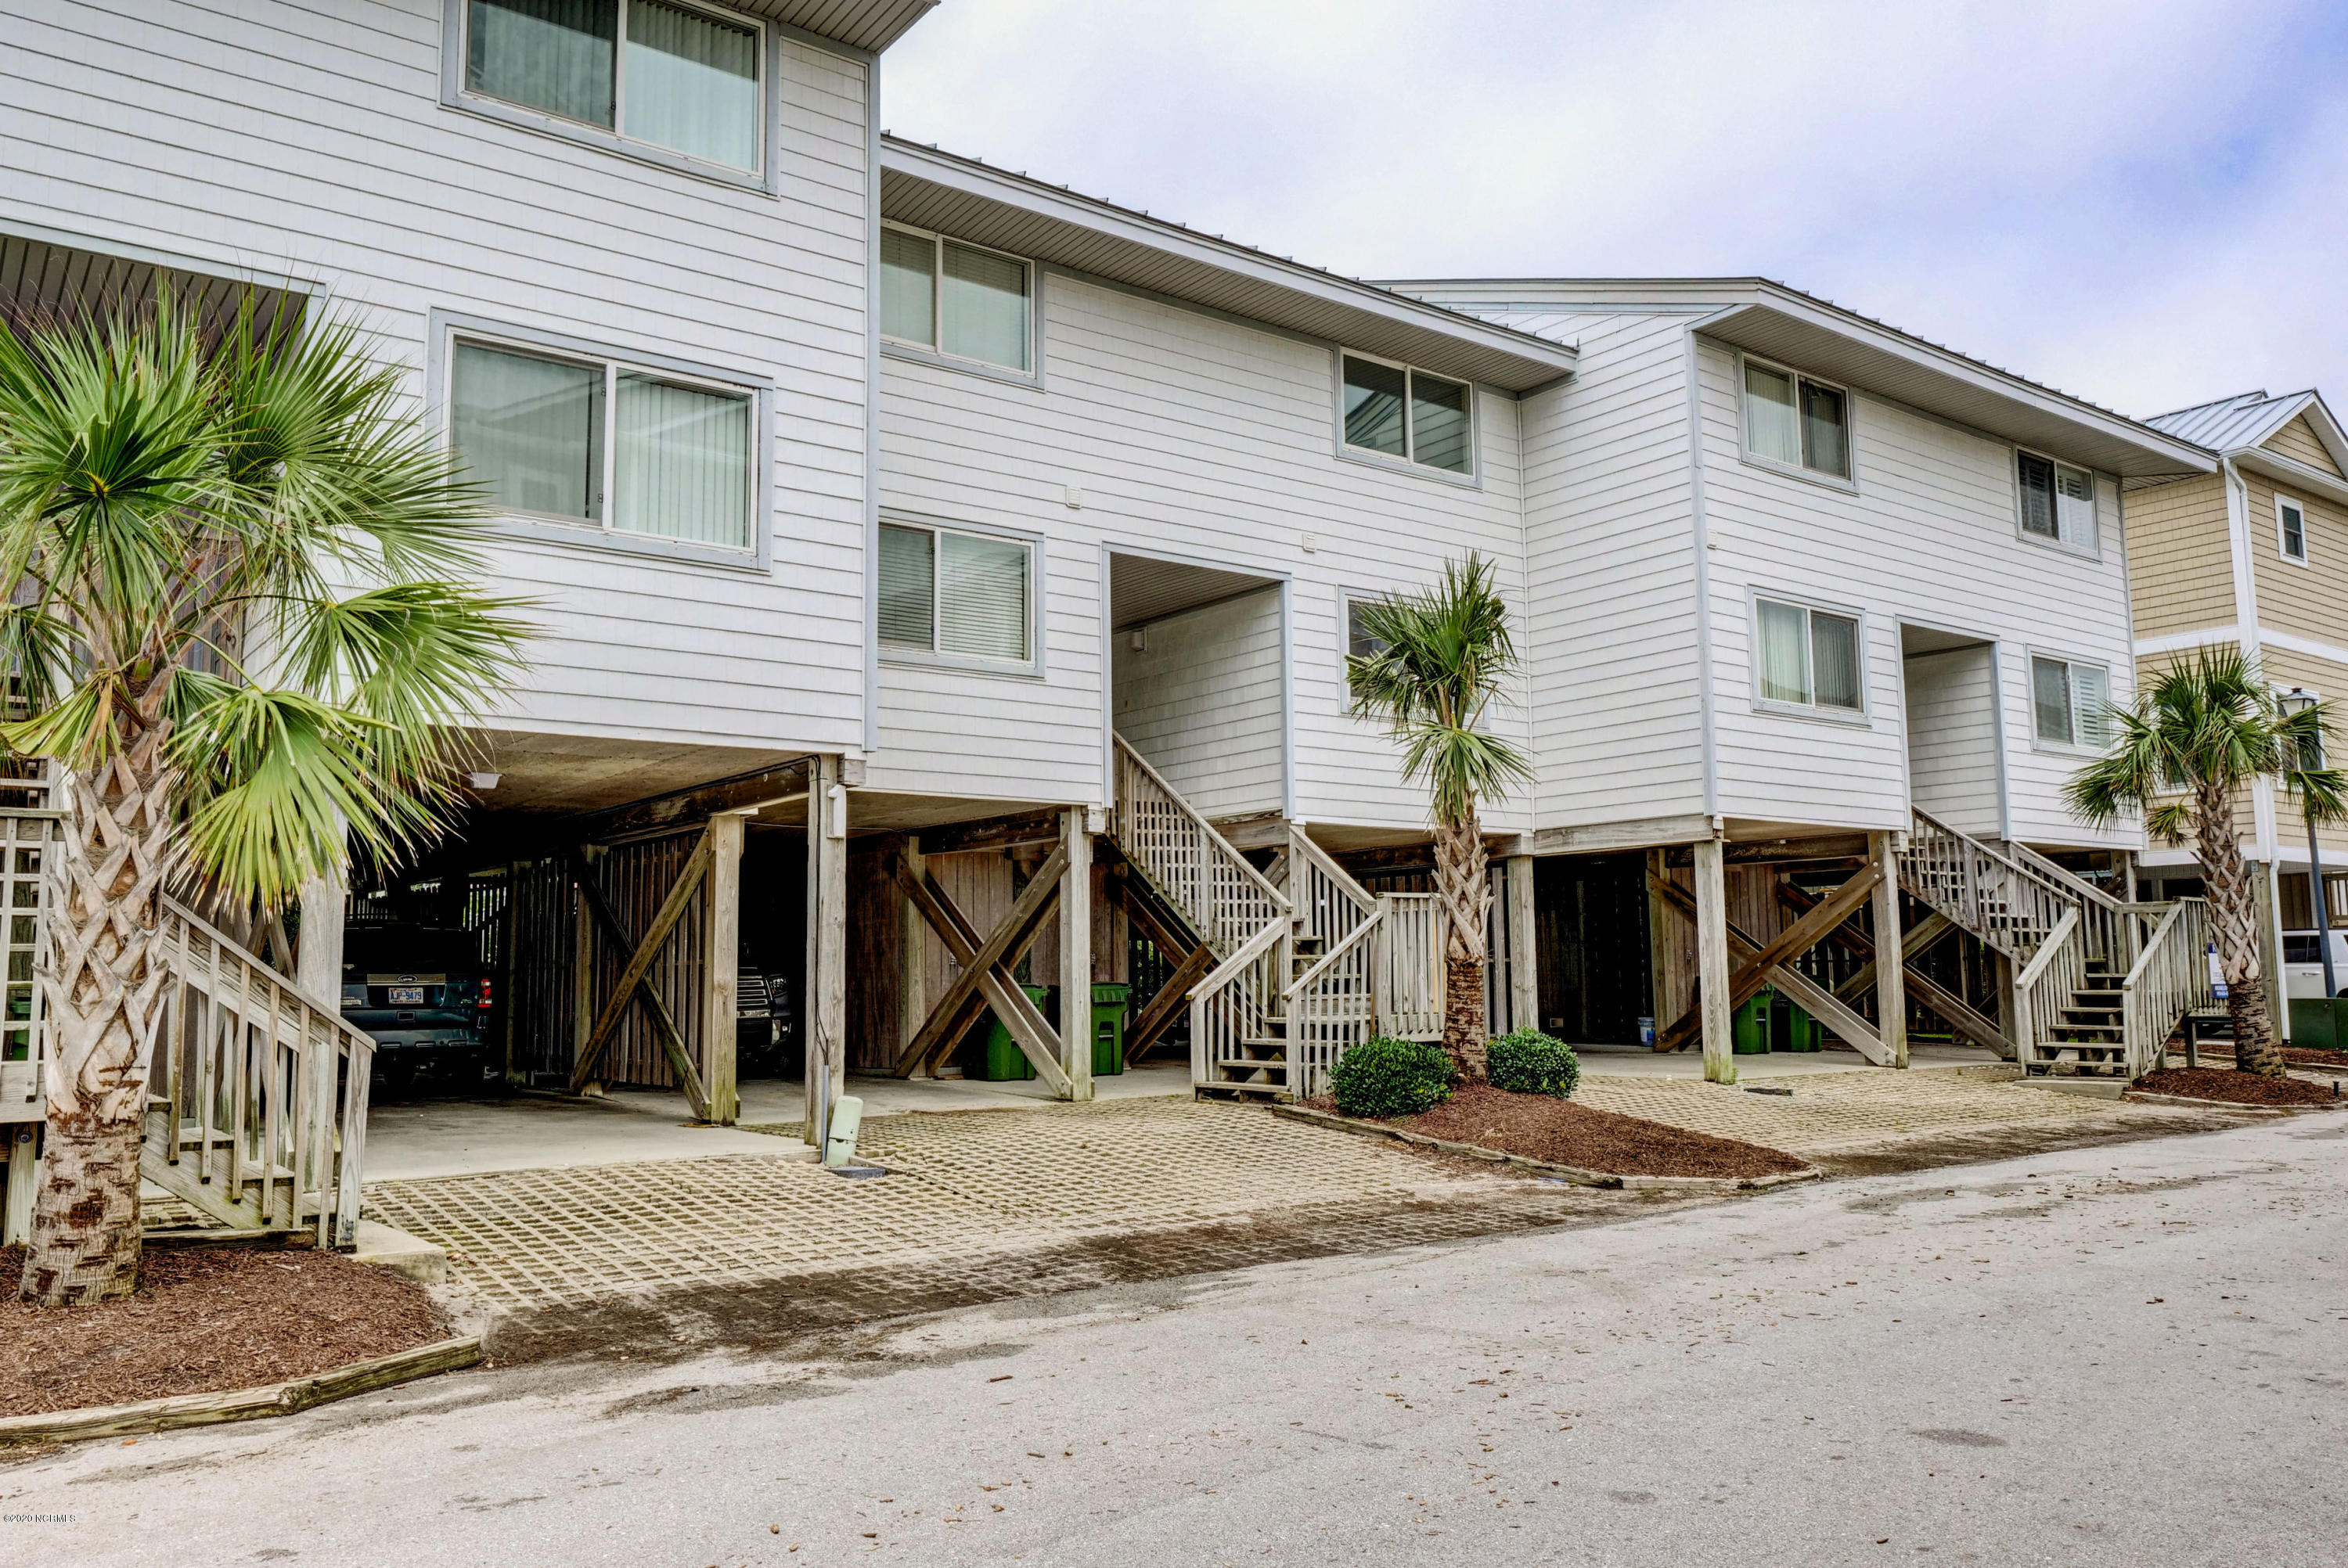 953 Tower Court, Topsail Beach, North Carolina 28445, 2 Bedrooms Bedrooms, ,2 BathroomsBathrooms,Residential,For Sale,Tower,100223005